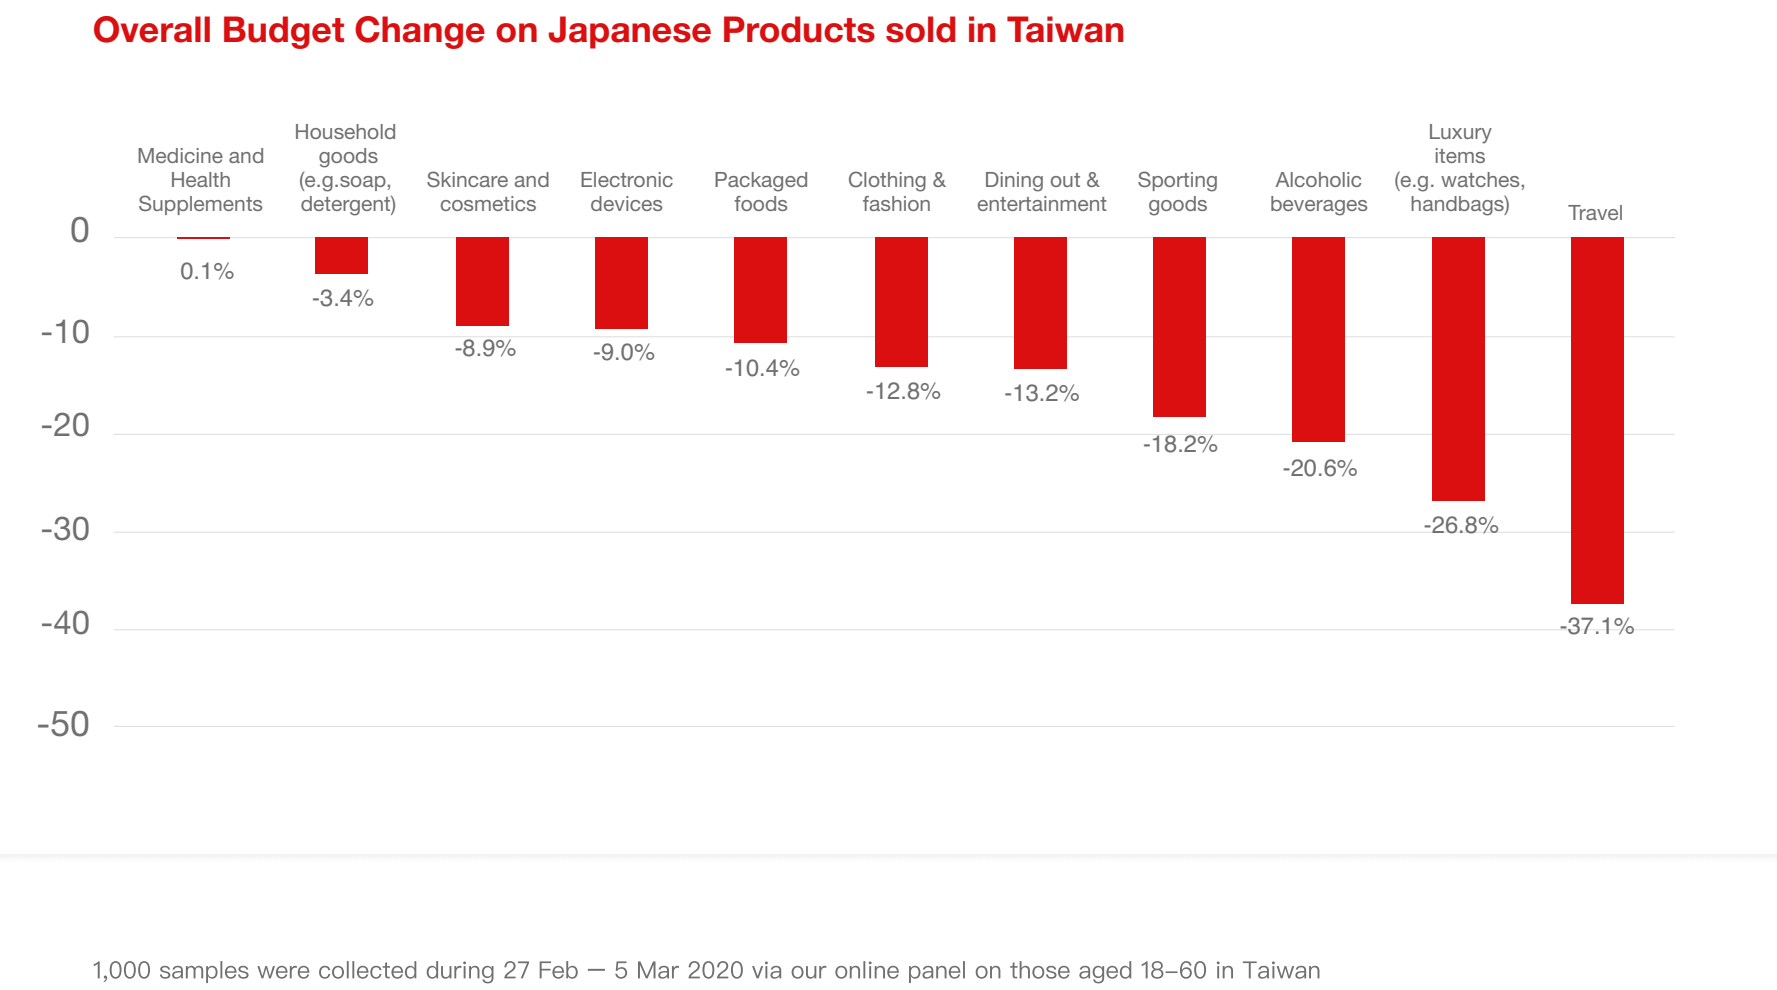 Overall Budget Change on Japanese Products sold in Taiwan